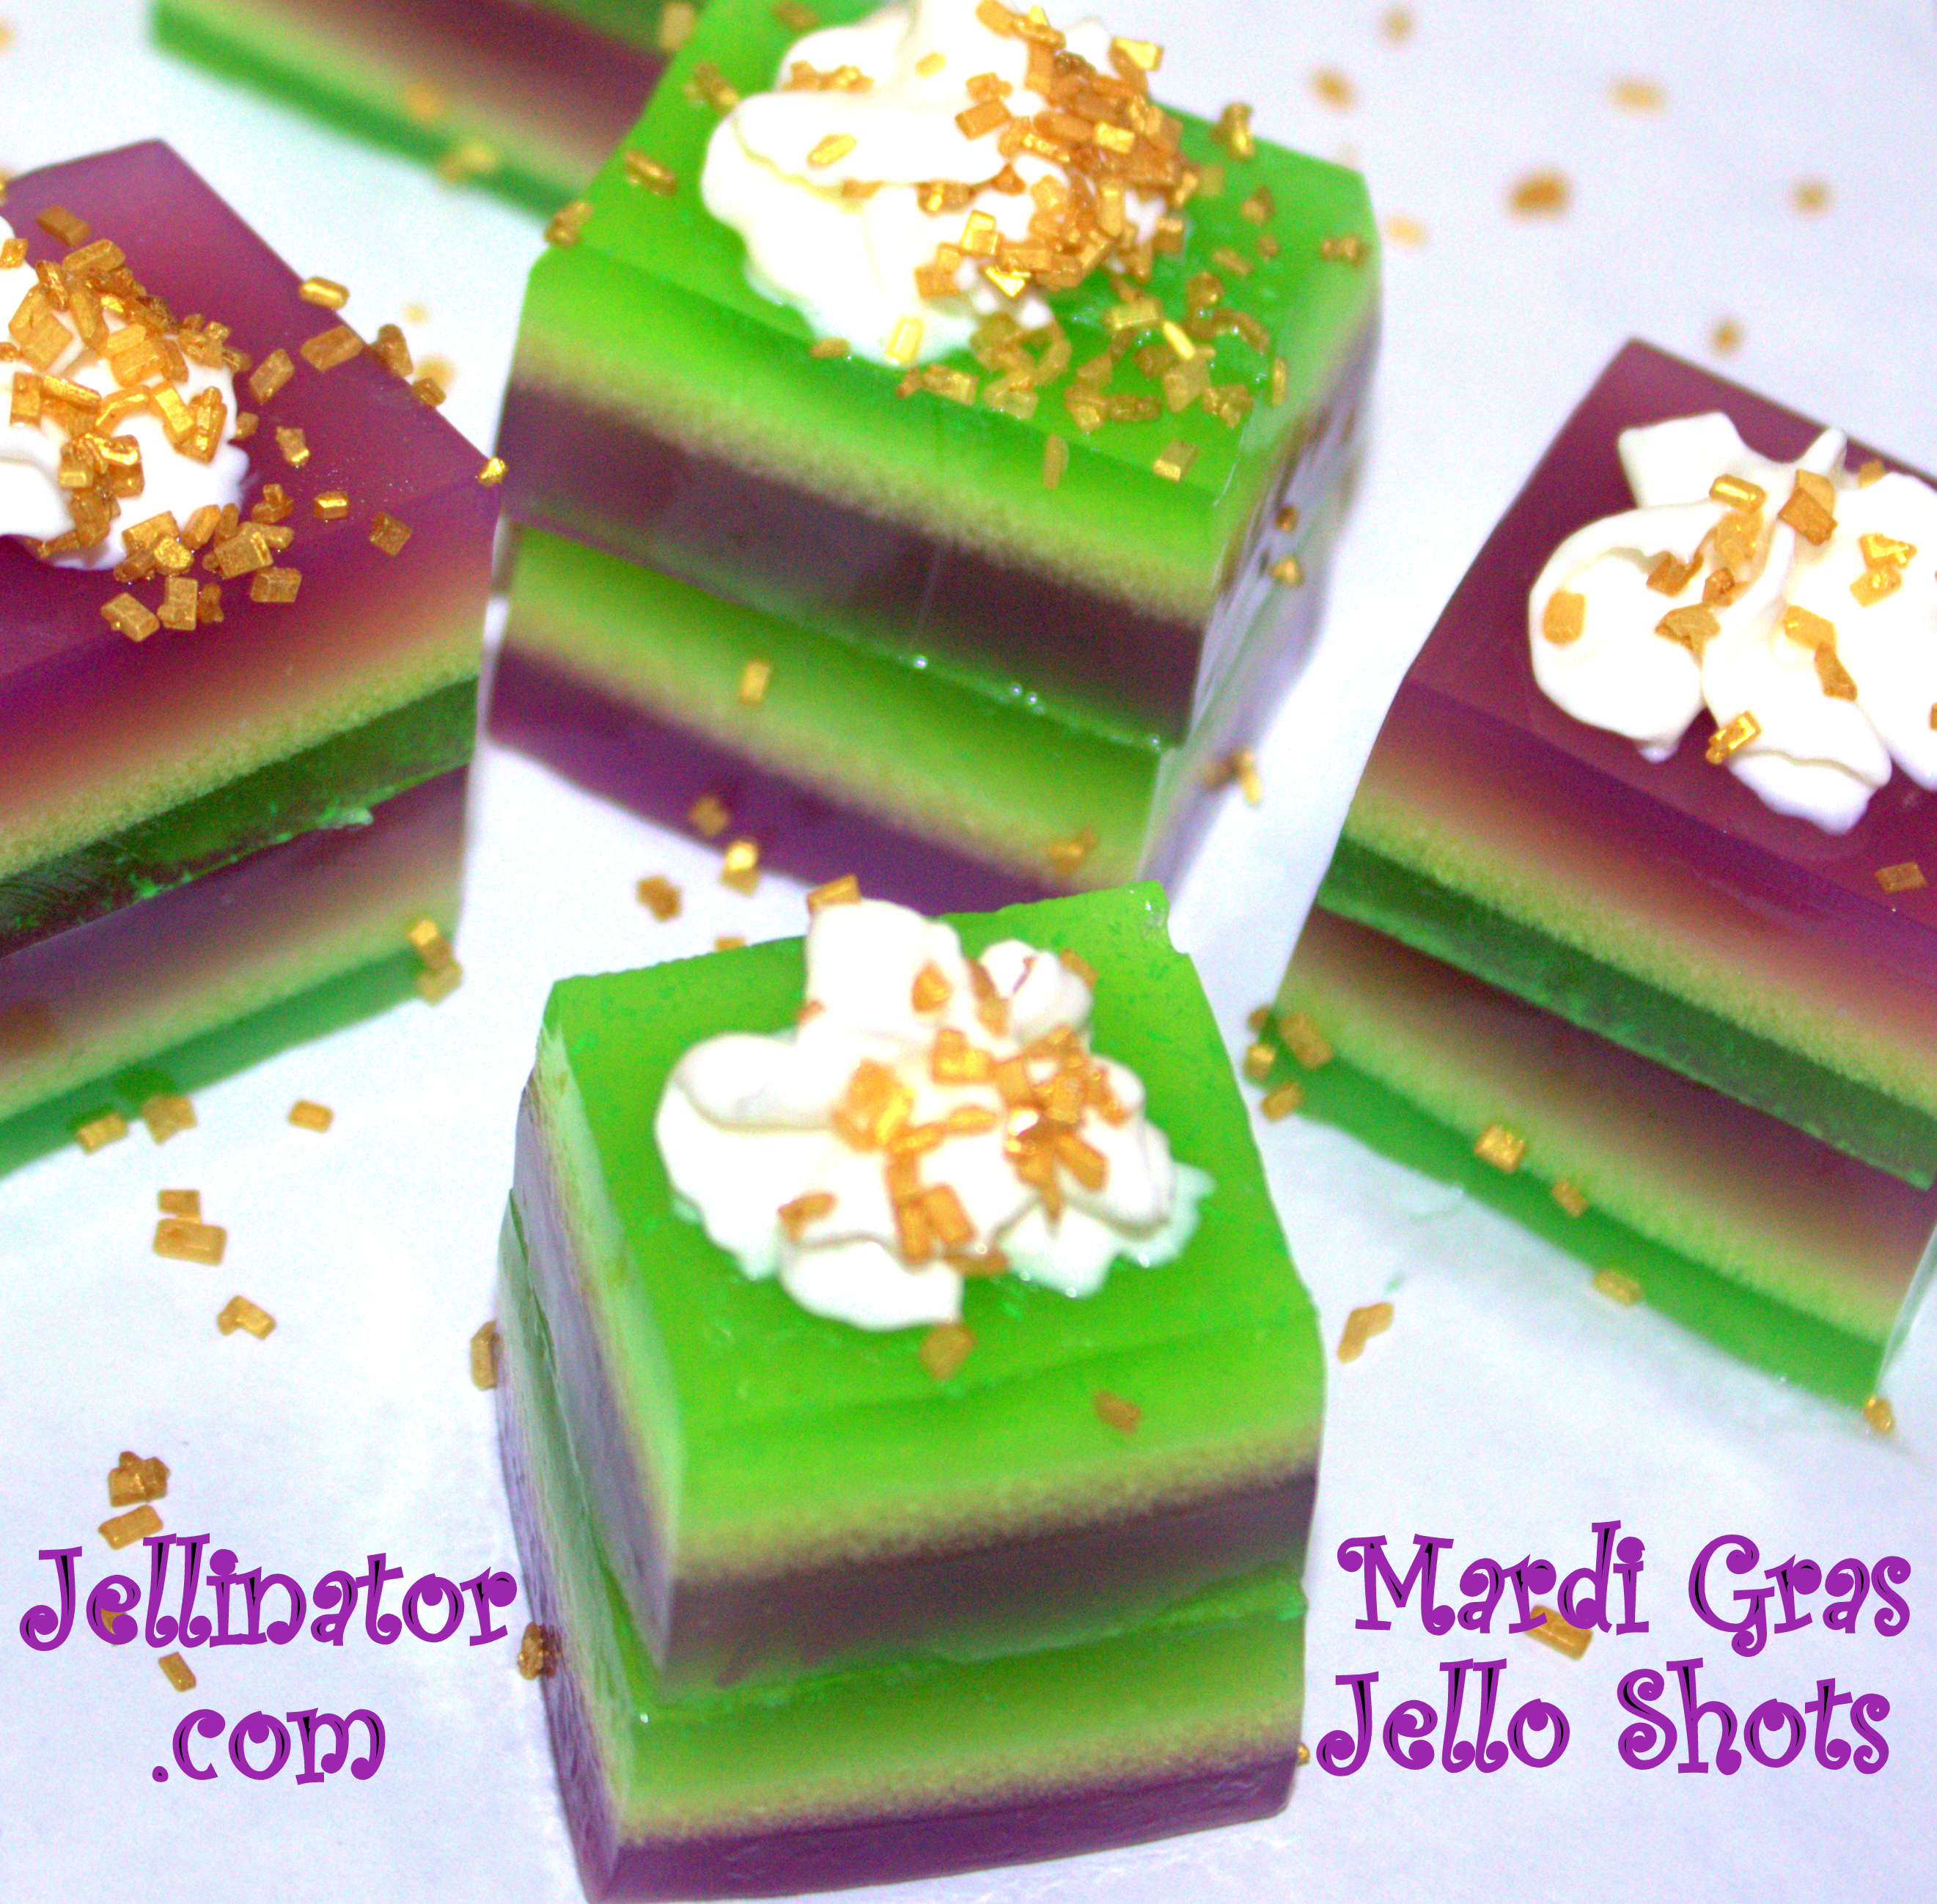 Remarkable Colorful Mardi Gras Jello Shots Recipe Jellinator Funny Birthday Cards Online Barepcheapnameinfo